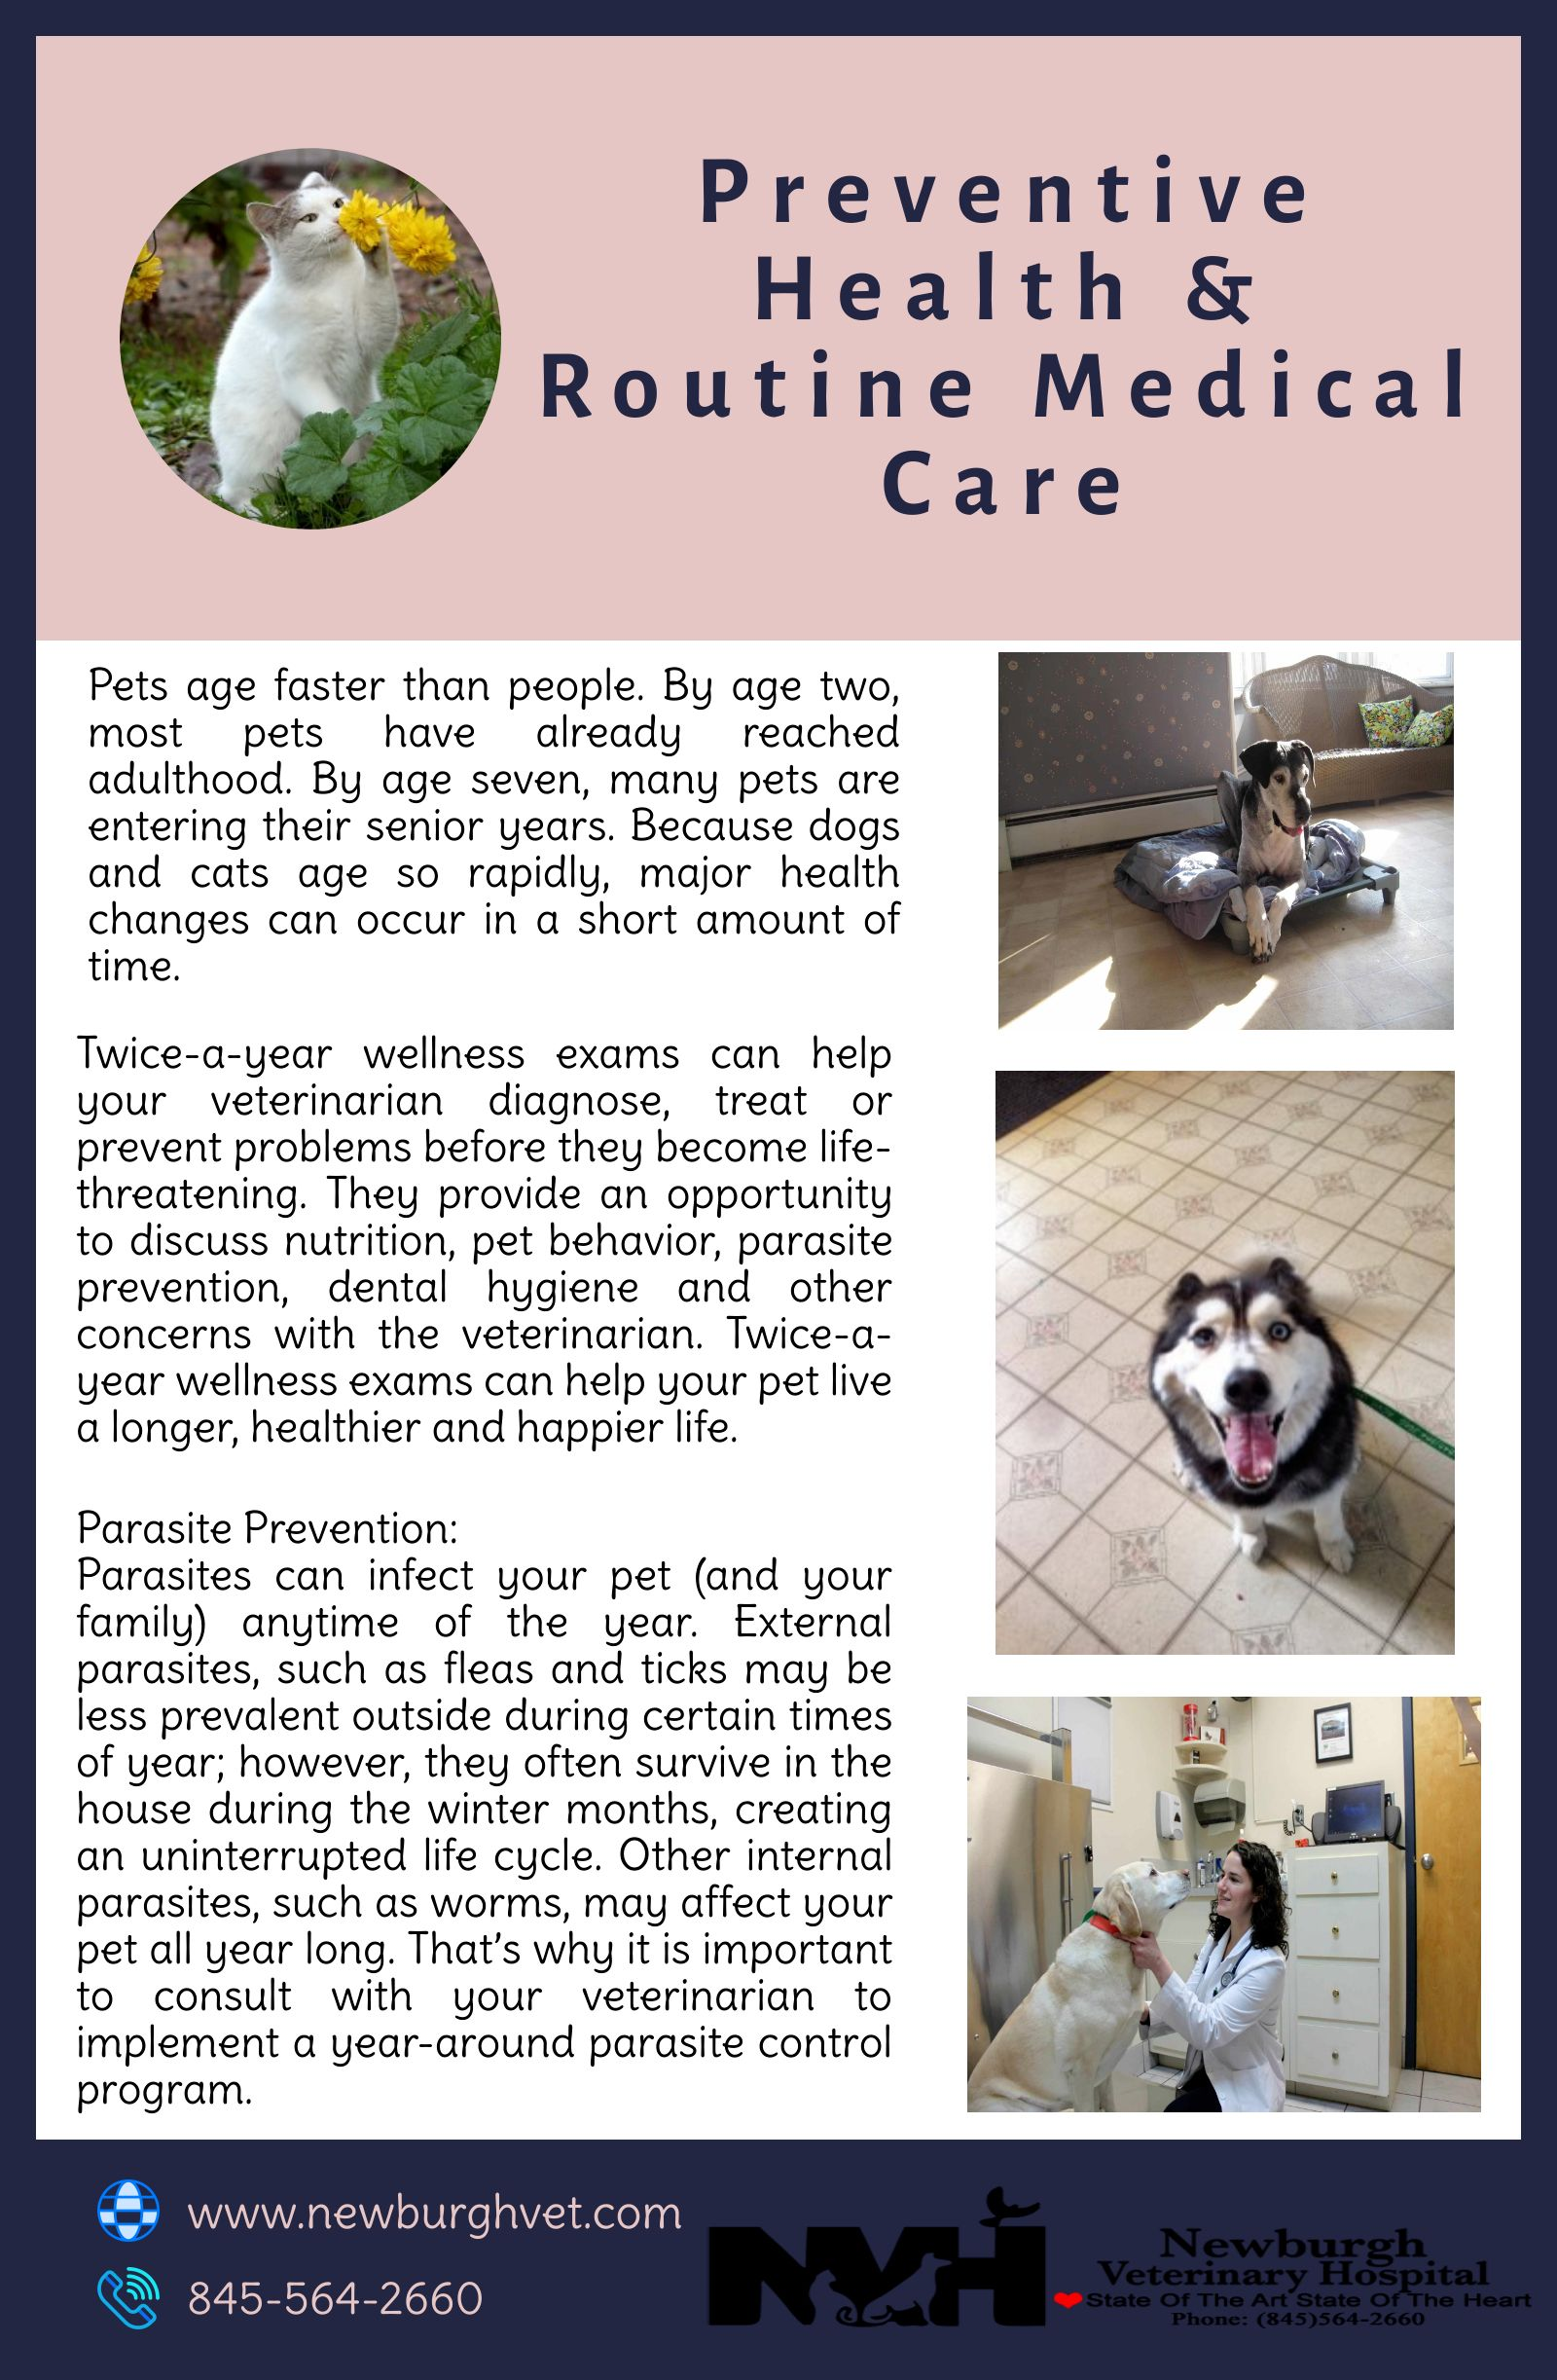 People Love Their Pets And They Are Very Concerned About Their Well Being Pet Owners Should Know Preventive Health Pet Vet Preventative Health Animal Hospital